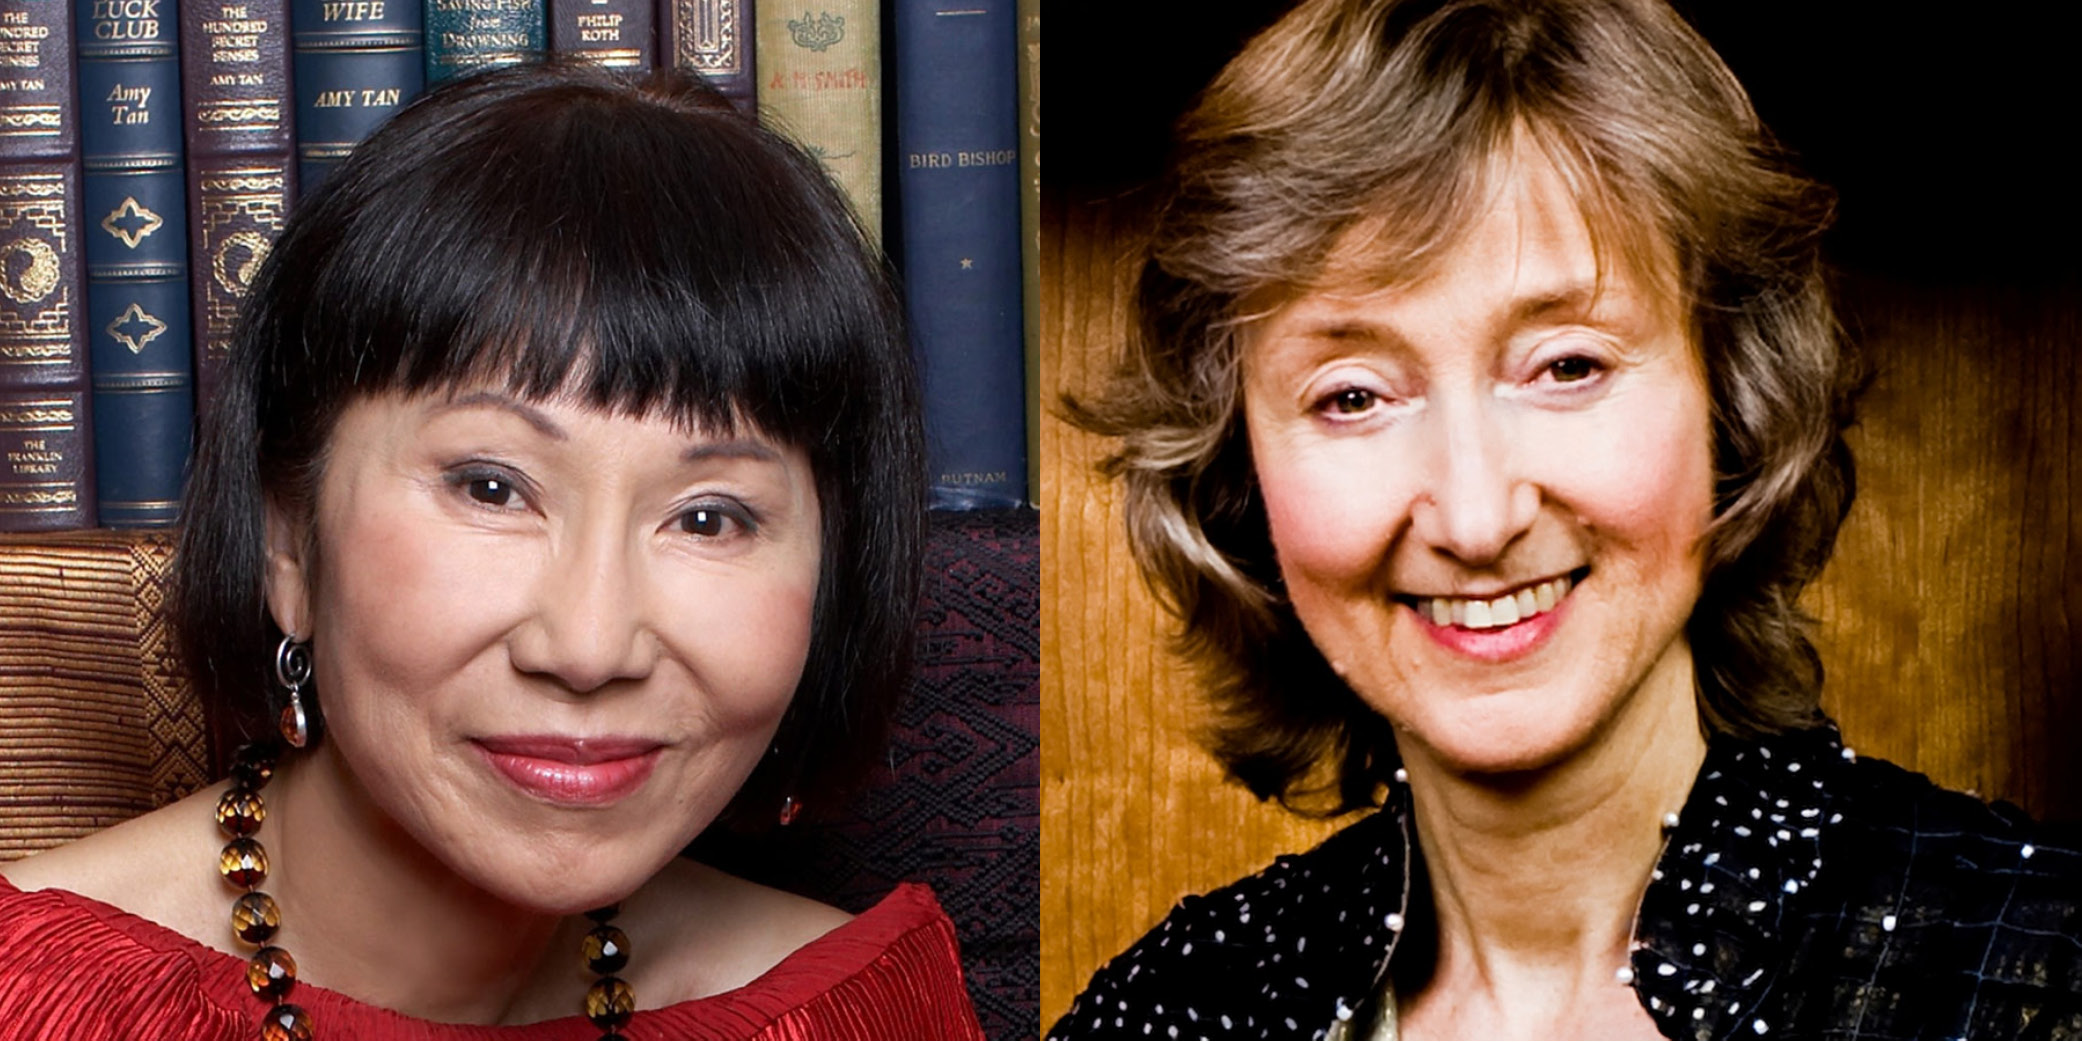 Authors Amy Tan (left) and Deborah Tannen (right)